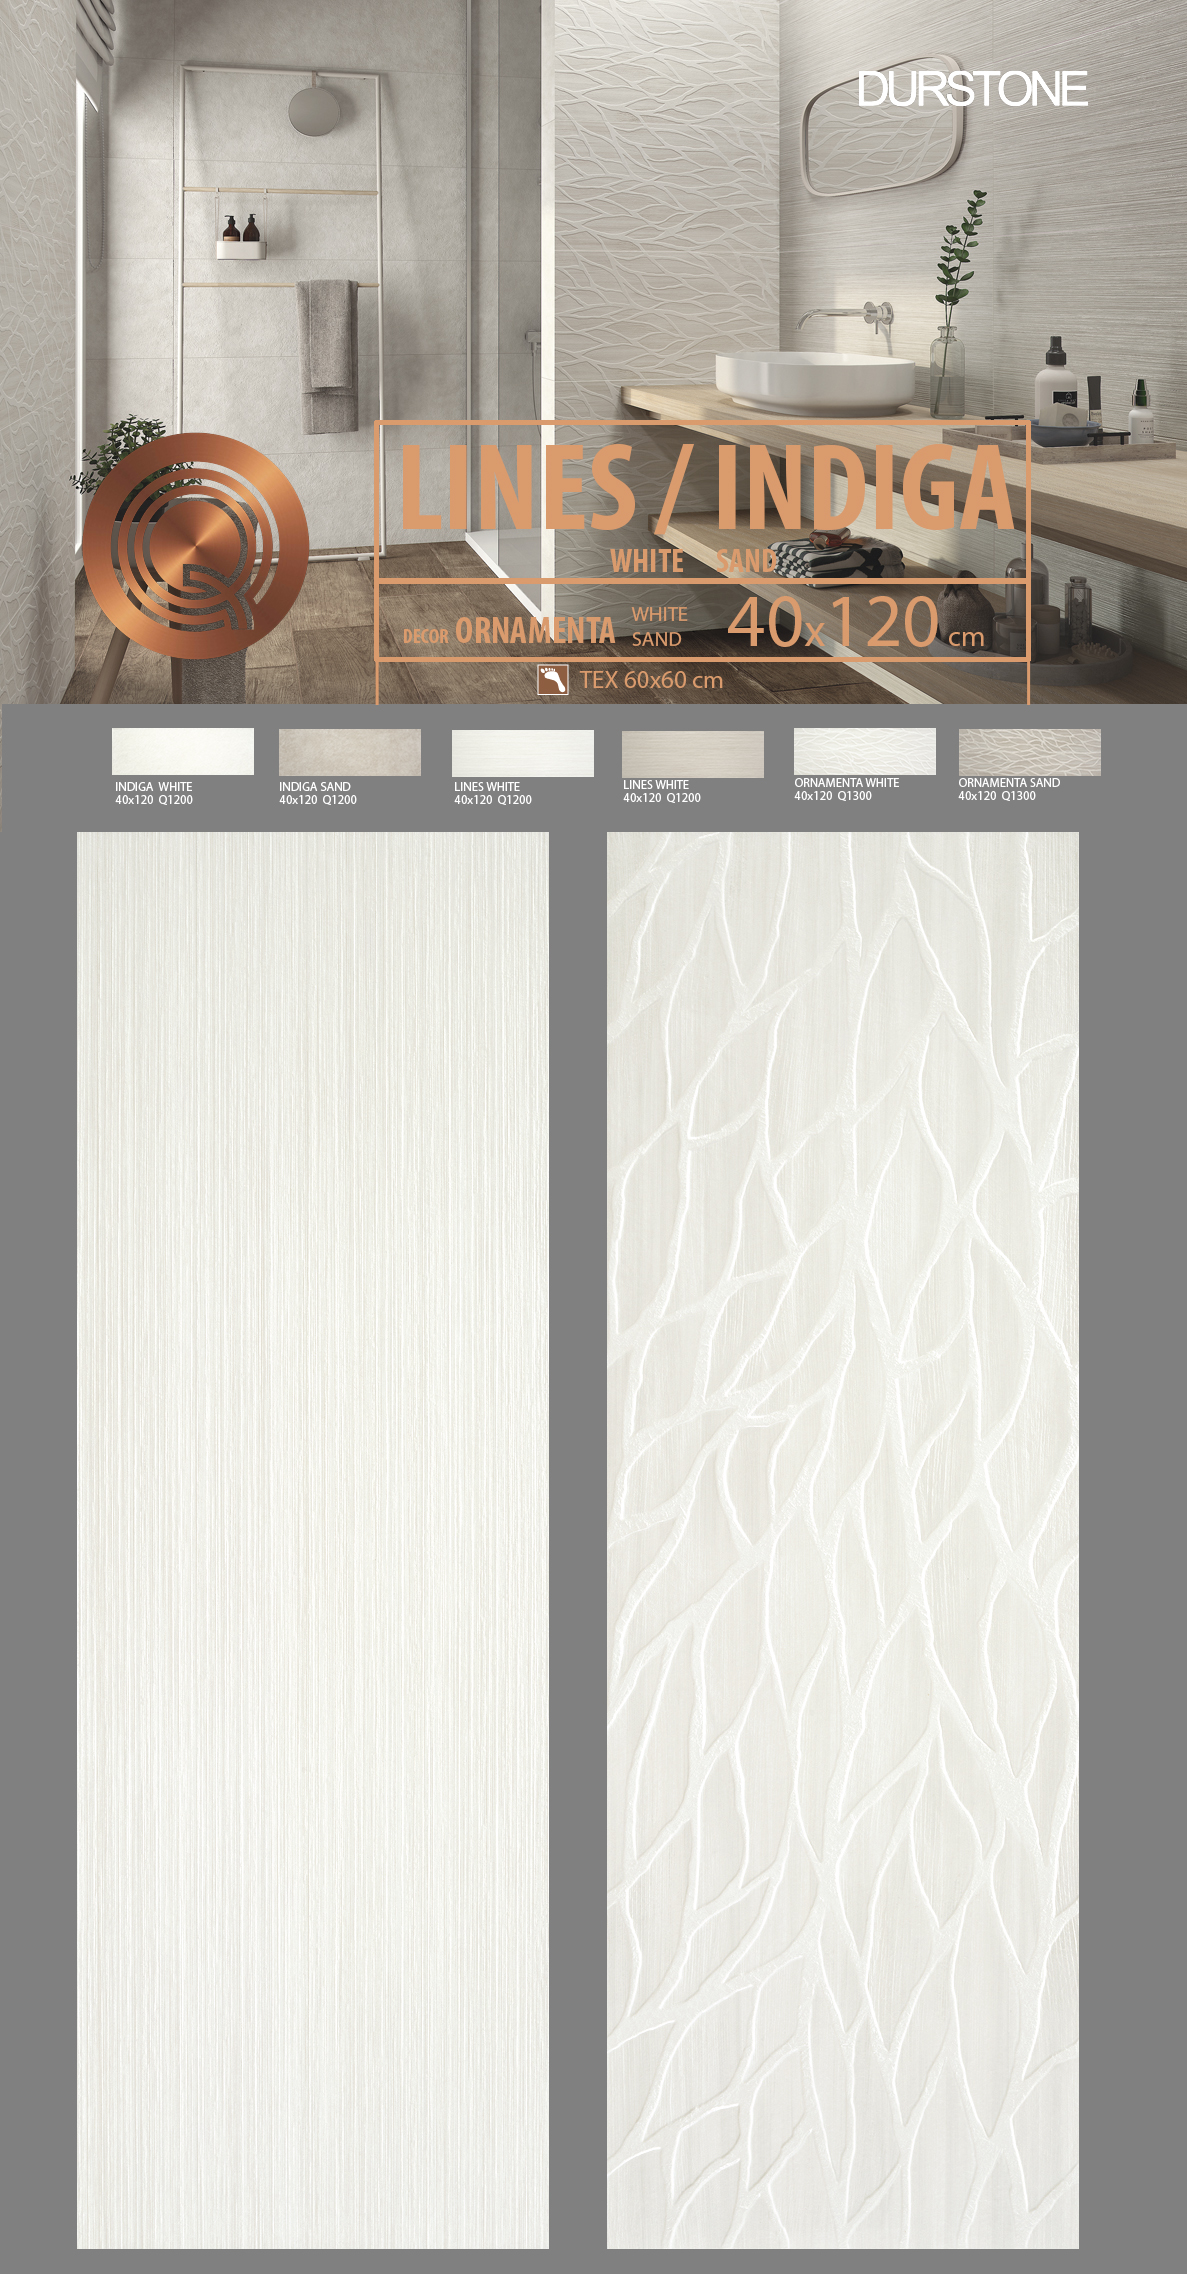 6045 RV PANEL INDIGA / LINES / ORNAMENTA WHITE Cod. 6045